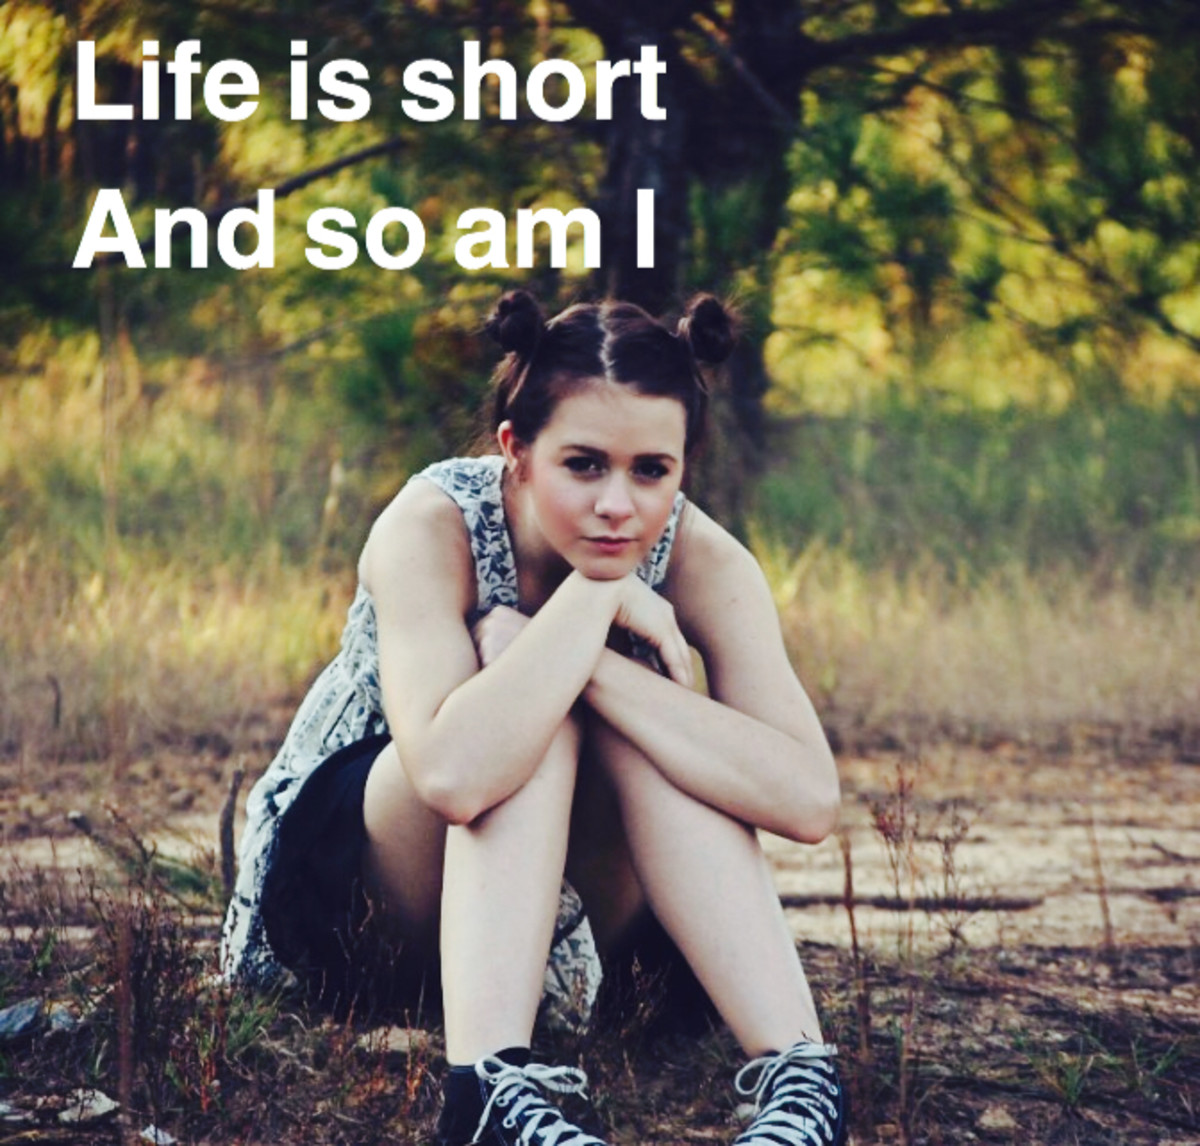 Life is too short meme.